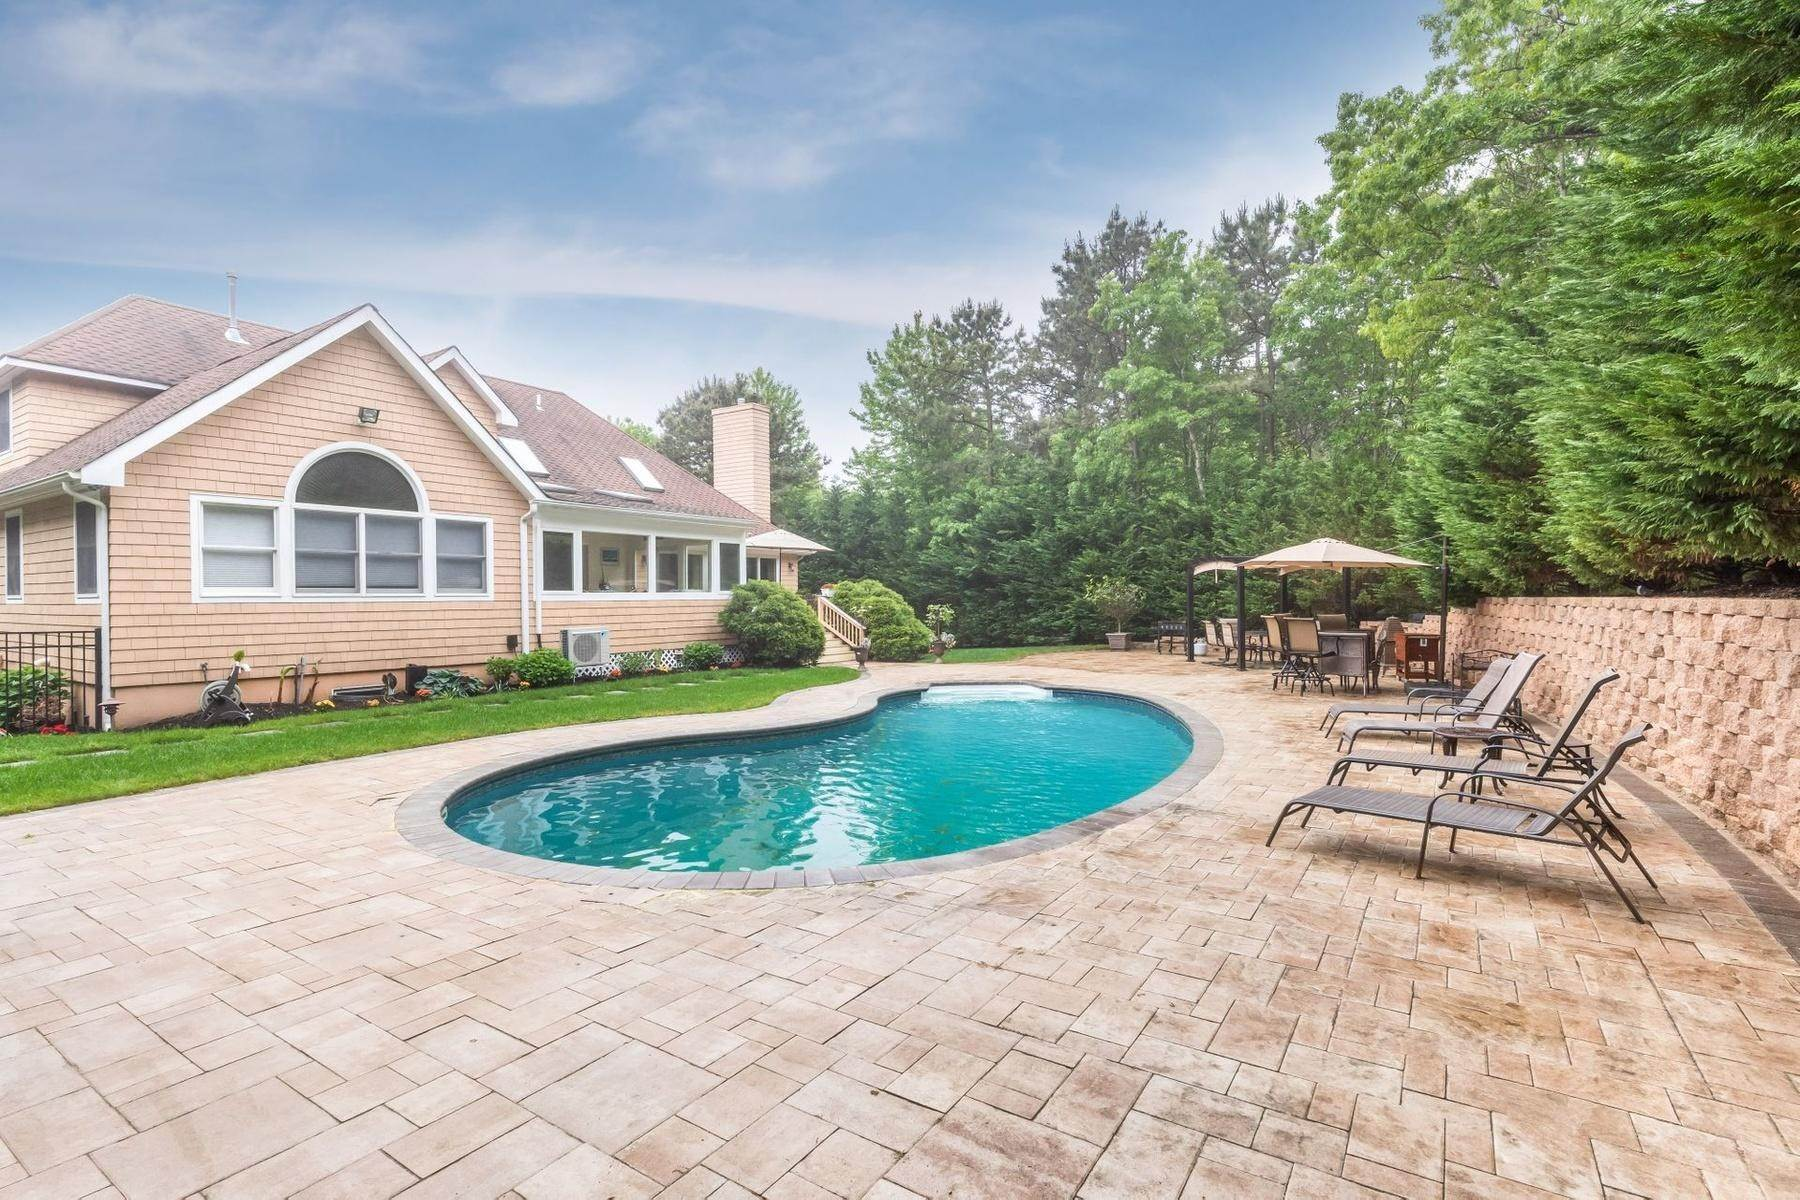 3. Single Family Home at Upscale Home In The Pines With Inground Heated Pool East Quogue, NY 11942